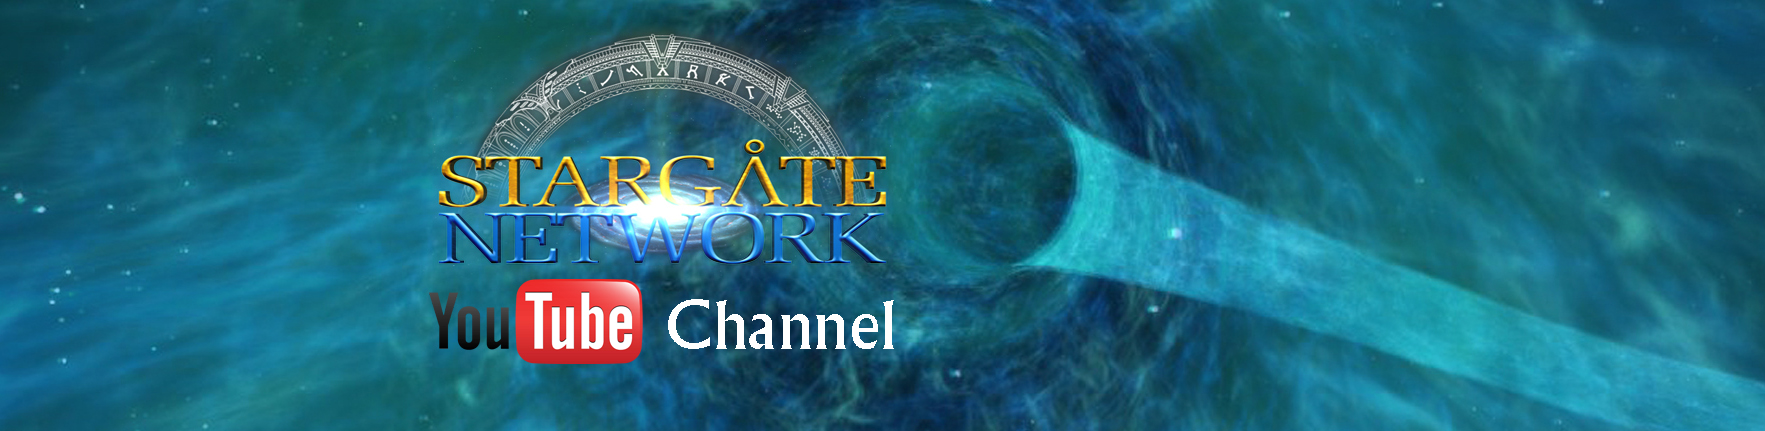 Stargate Network Official Youtube Channel